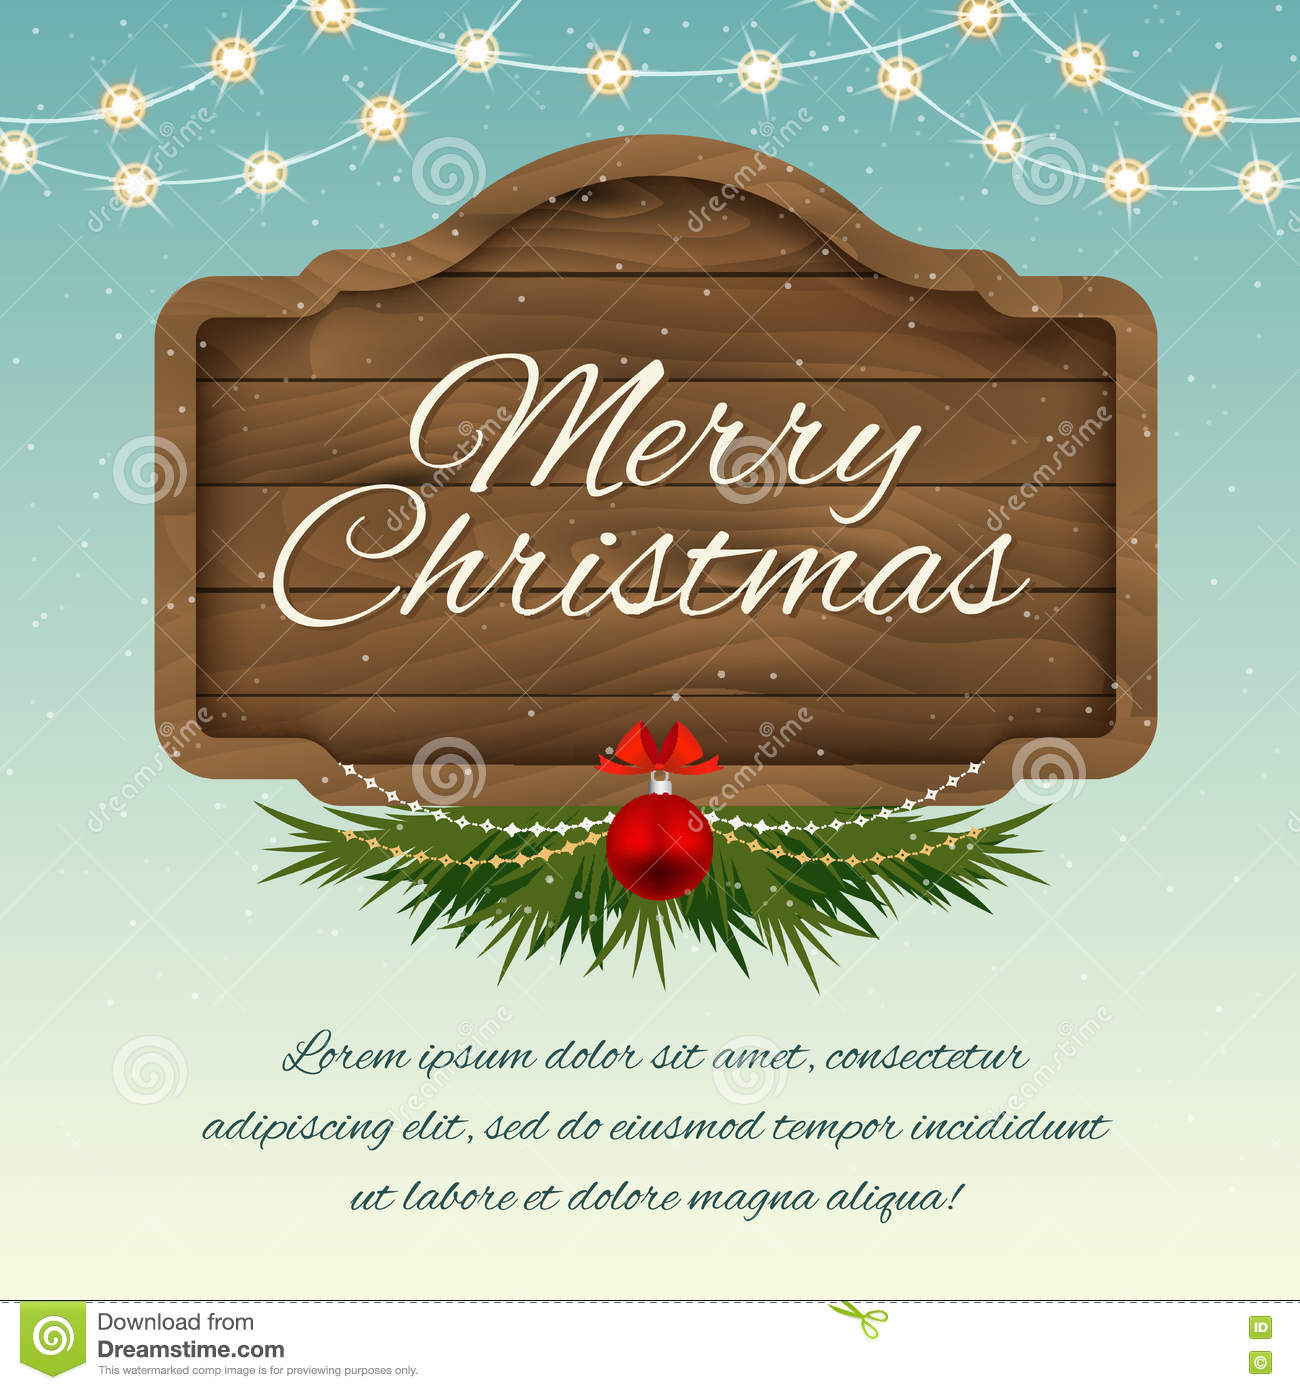 download merry christmas wooden sign board vector holiday greeting card stock vector illustration - Merry Christmas Wooden Sign